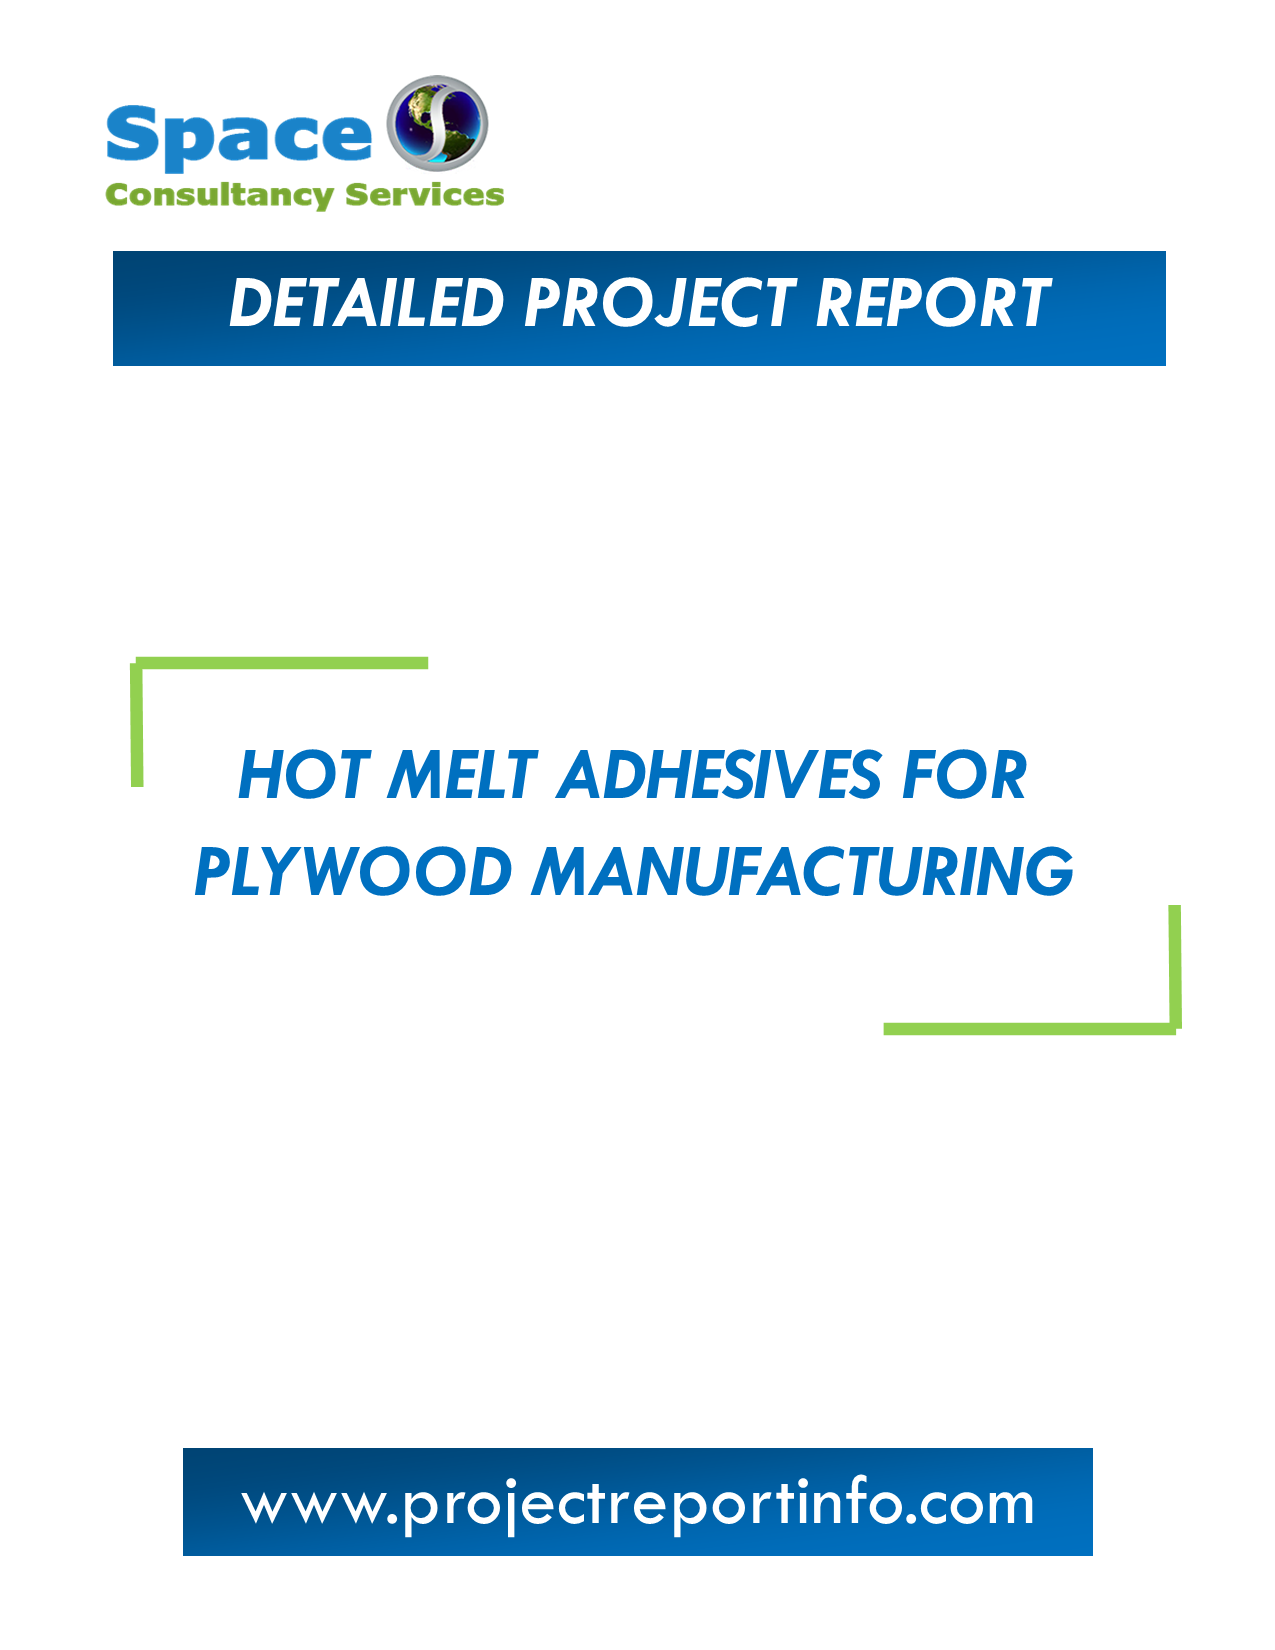 Project Report on Hot Melt Adhesives for Plywood